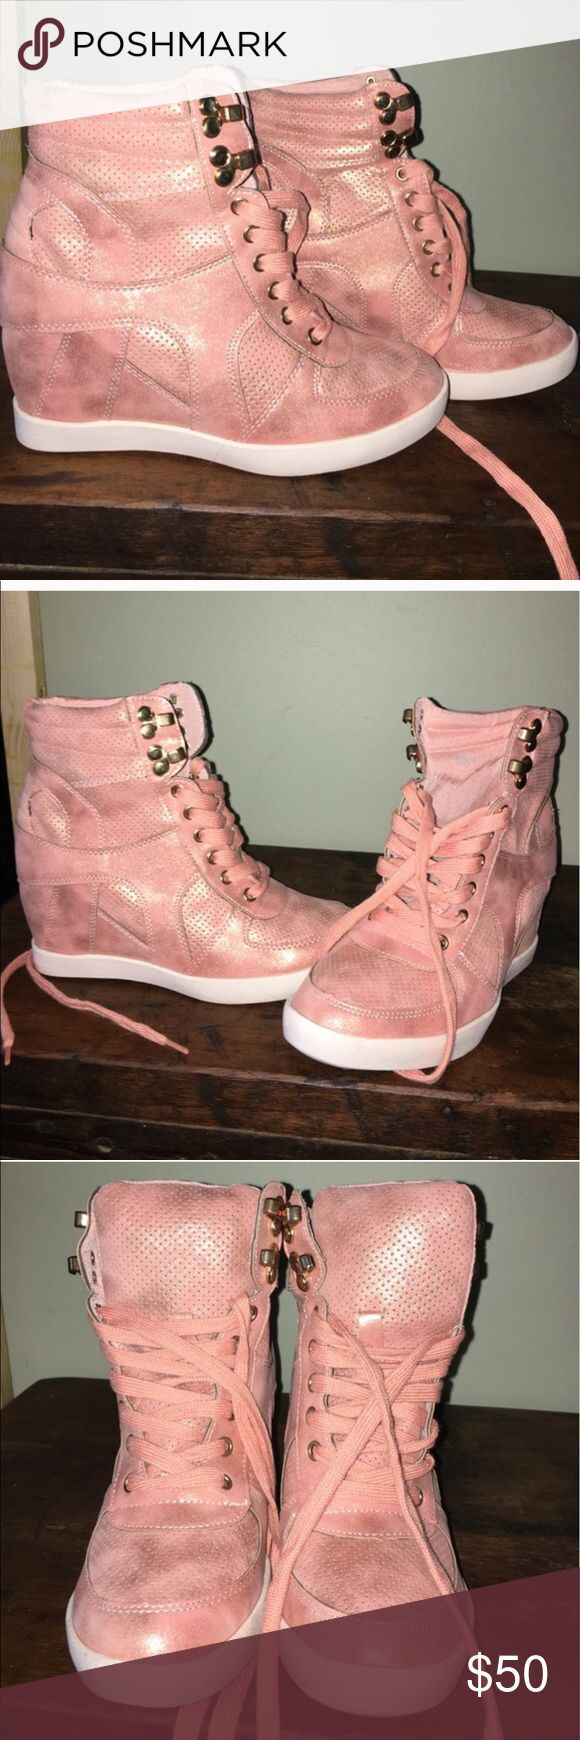 Top Moda fashion suede sneakers baby pink From moda internacional, top Moda , Beautiful baby pink color, size 7 , never used! Moda International Shoes Sneakers